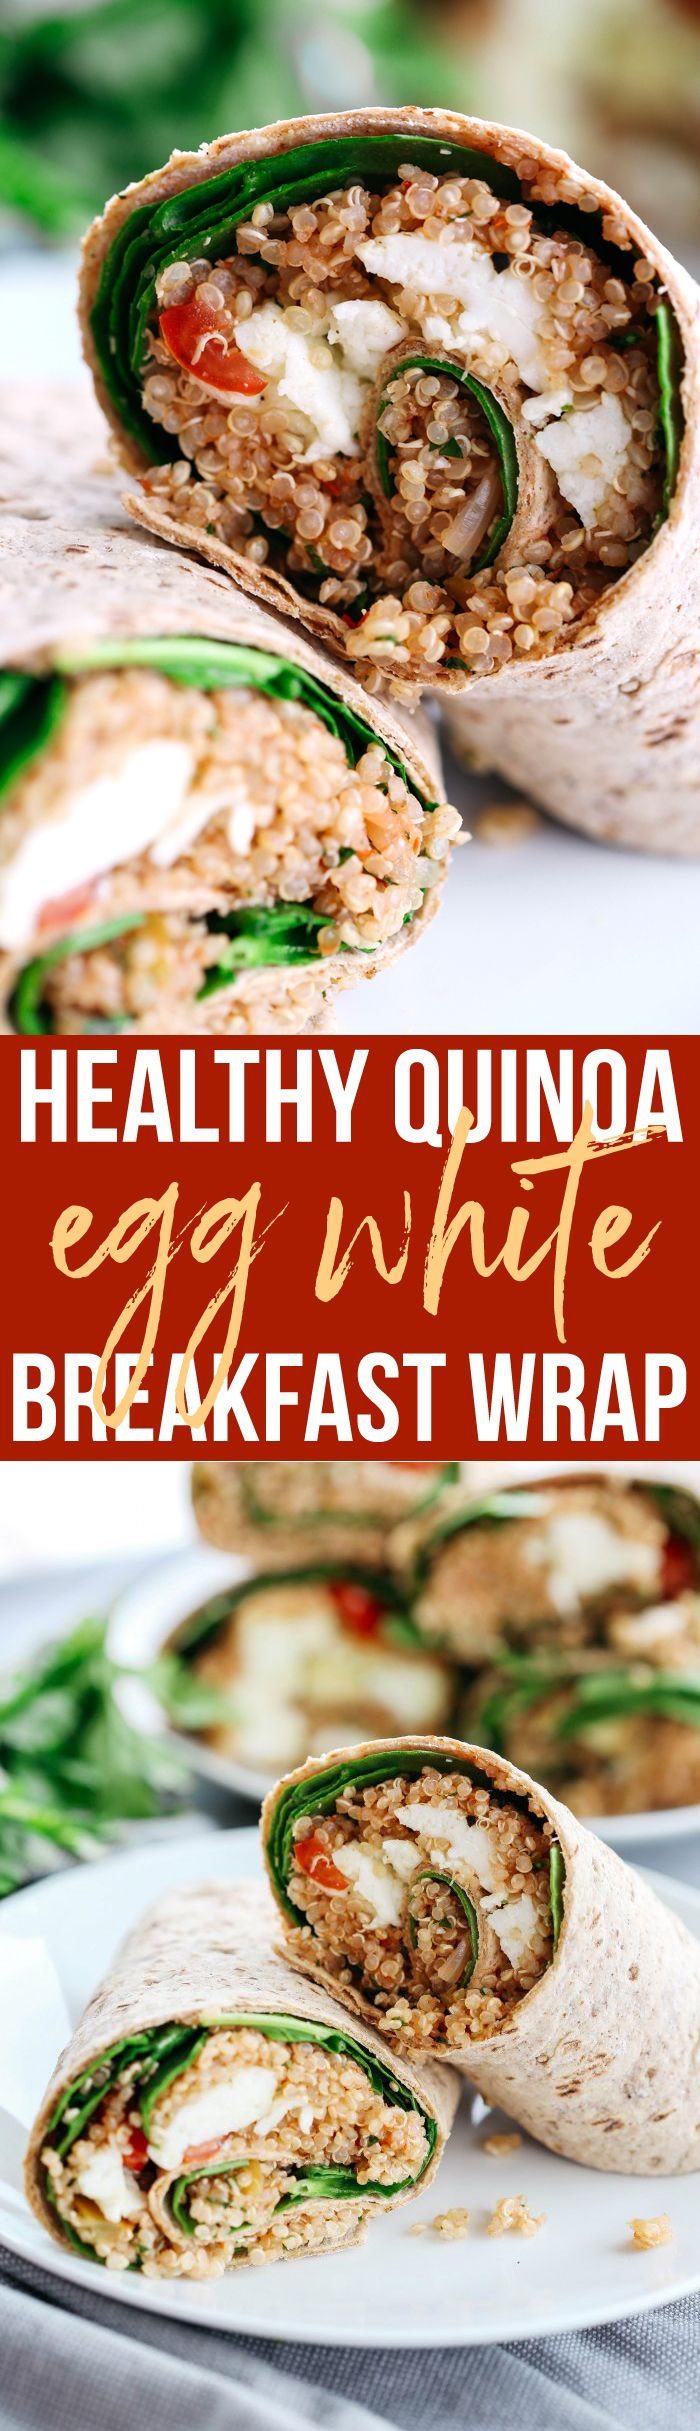 These Quinoa Egg White Wraps are super easy to make, are packed with tons of protein and taste super flavorful! They're also perfect to grab on-the-go!